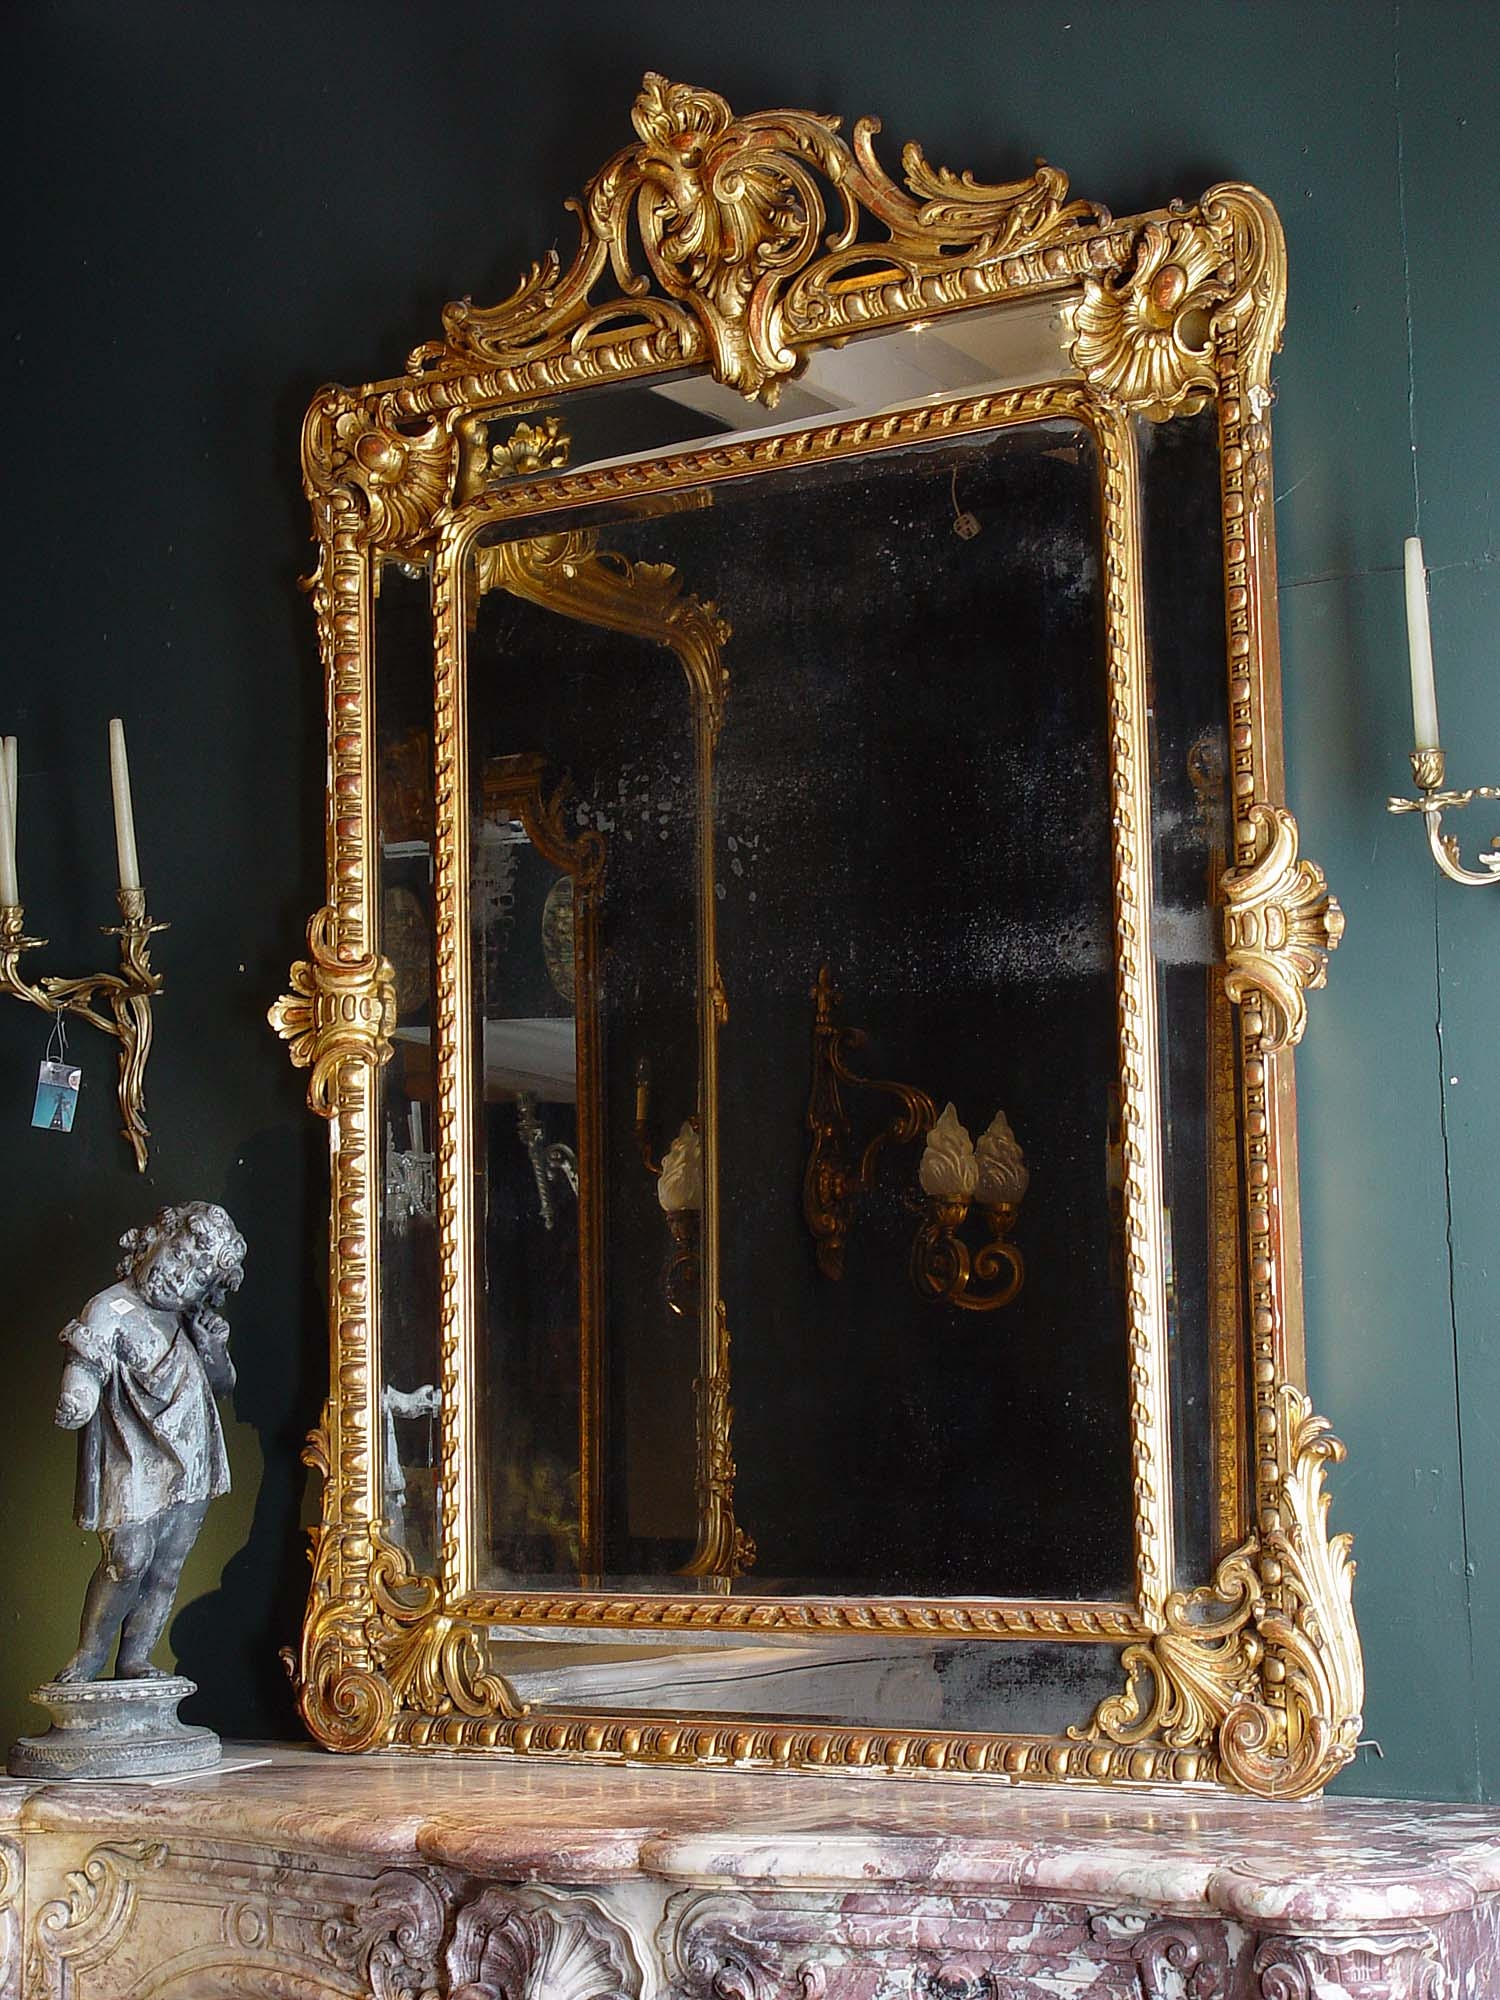 Big Mirrors For Sale 12 Enchanting Ideas With Large Leaning Pertaining To Antique Large Mirrors For Sale (Image 5 of 15)